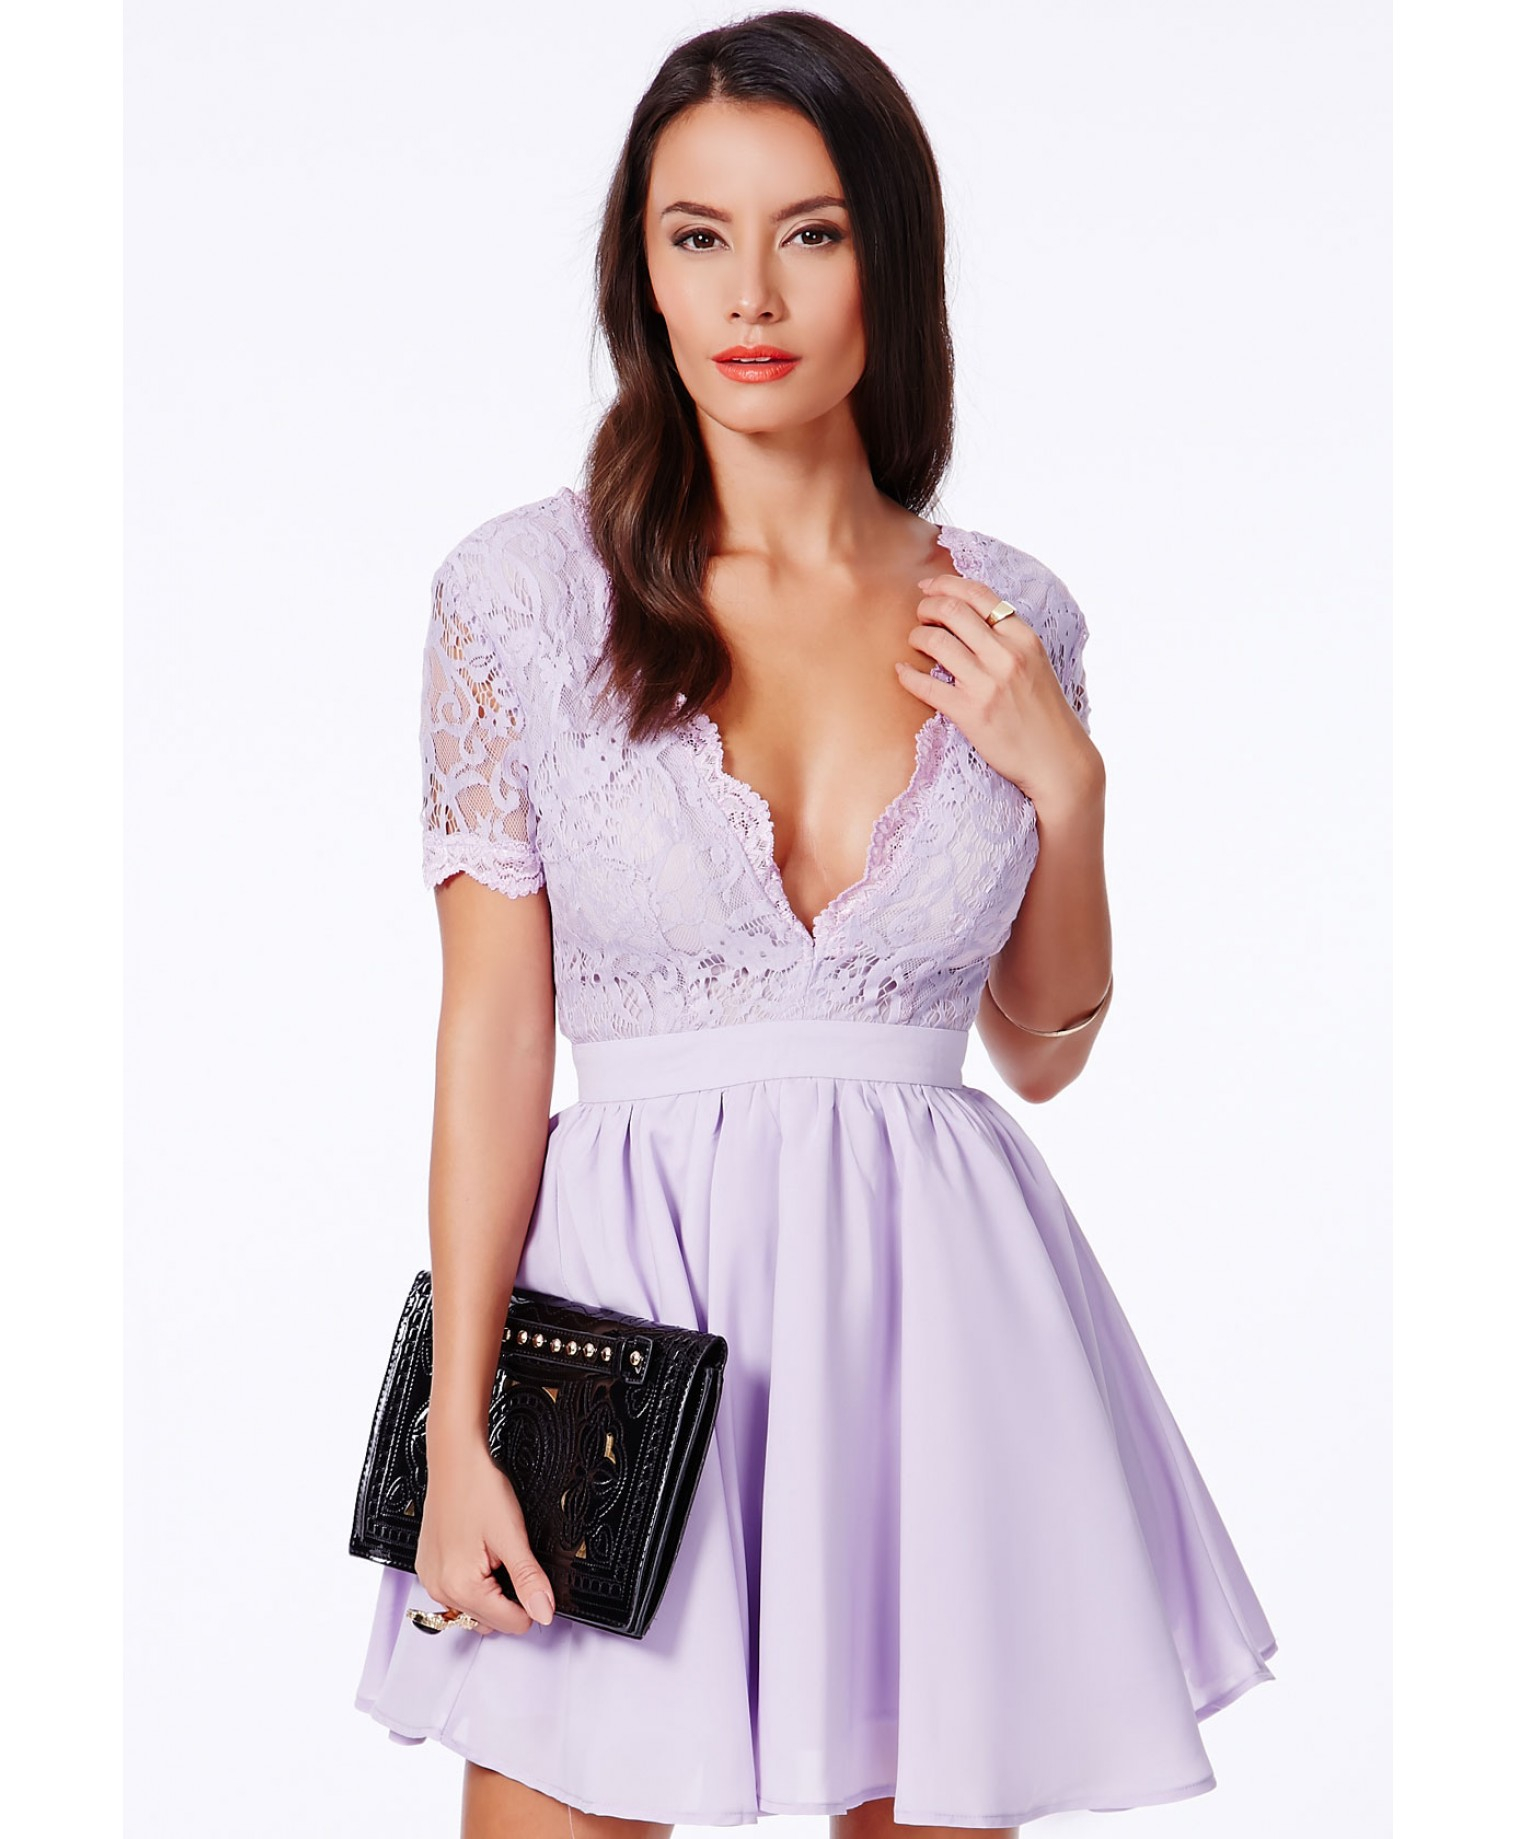 387bb9a109c26 Missguided Aleena Eyelash Lace Plunge Neck Puffball Mini Dress In ...